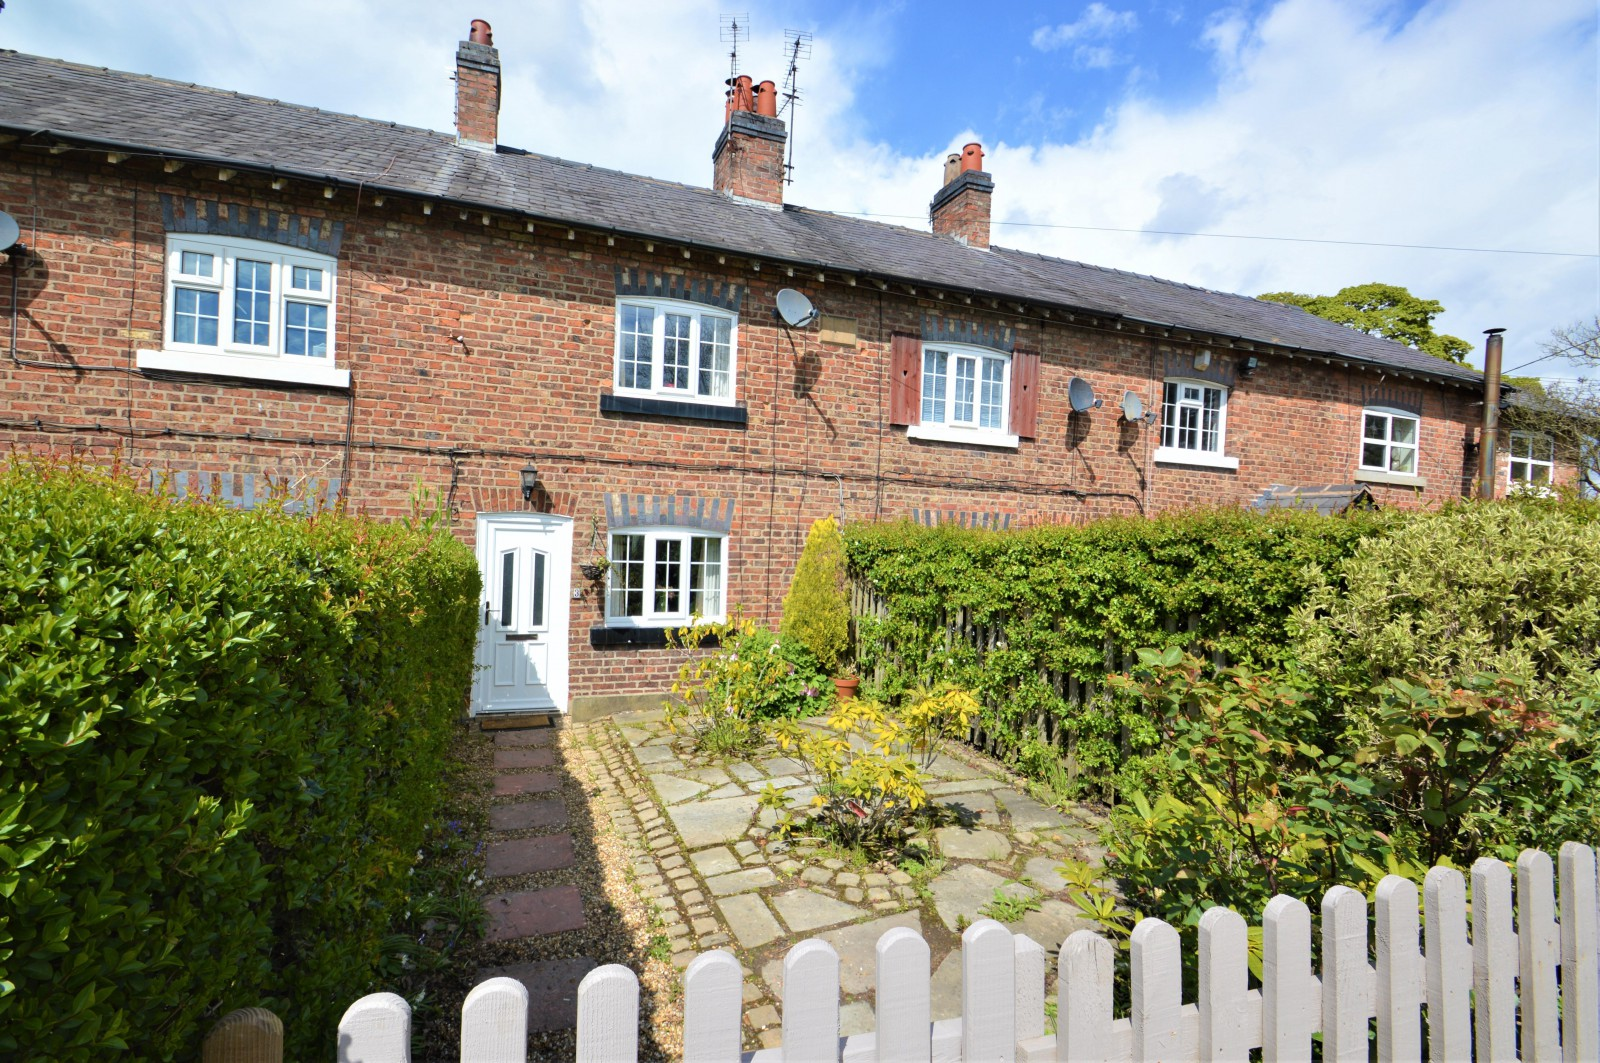 Hawthorn View Cottages, Lindow End, Mobberley